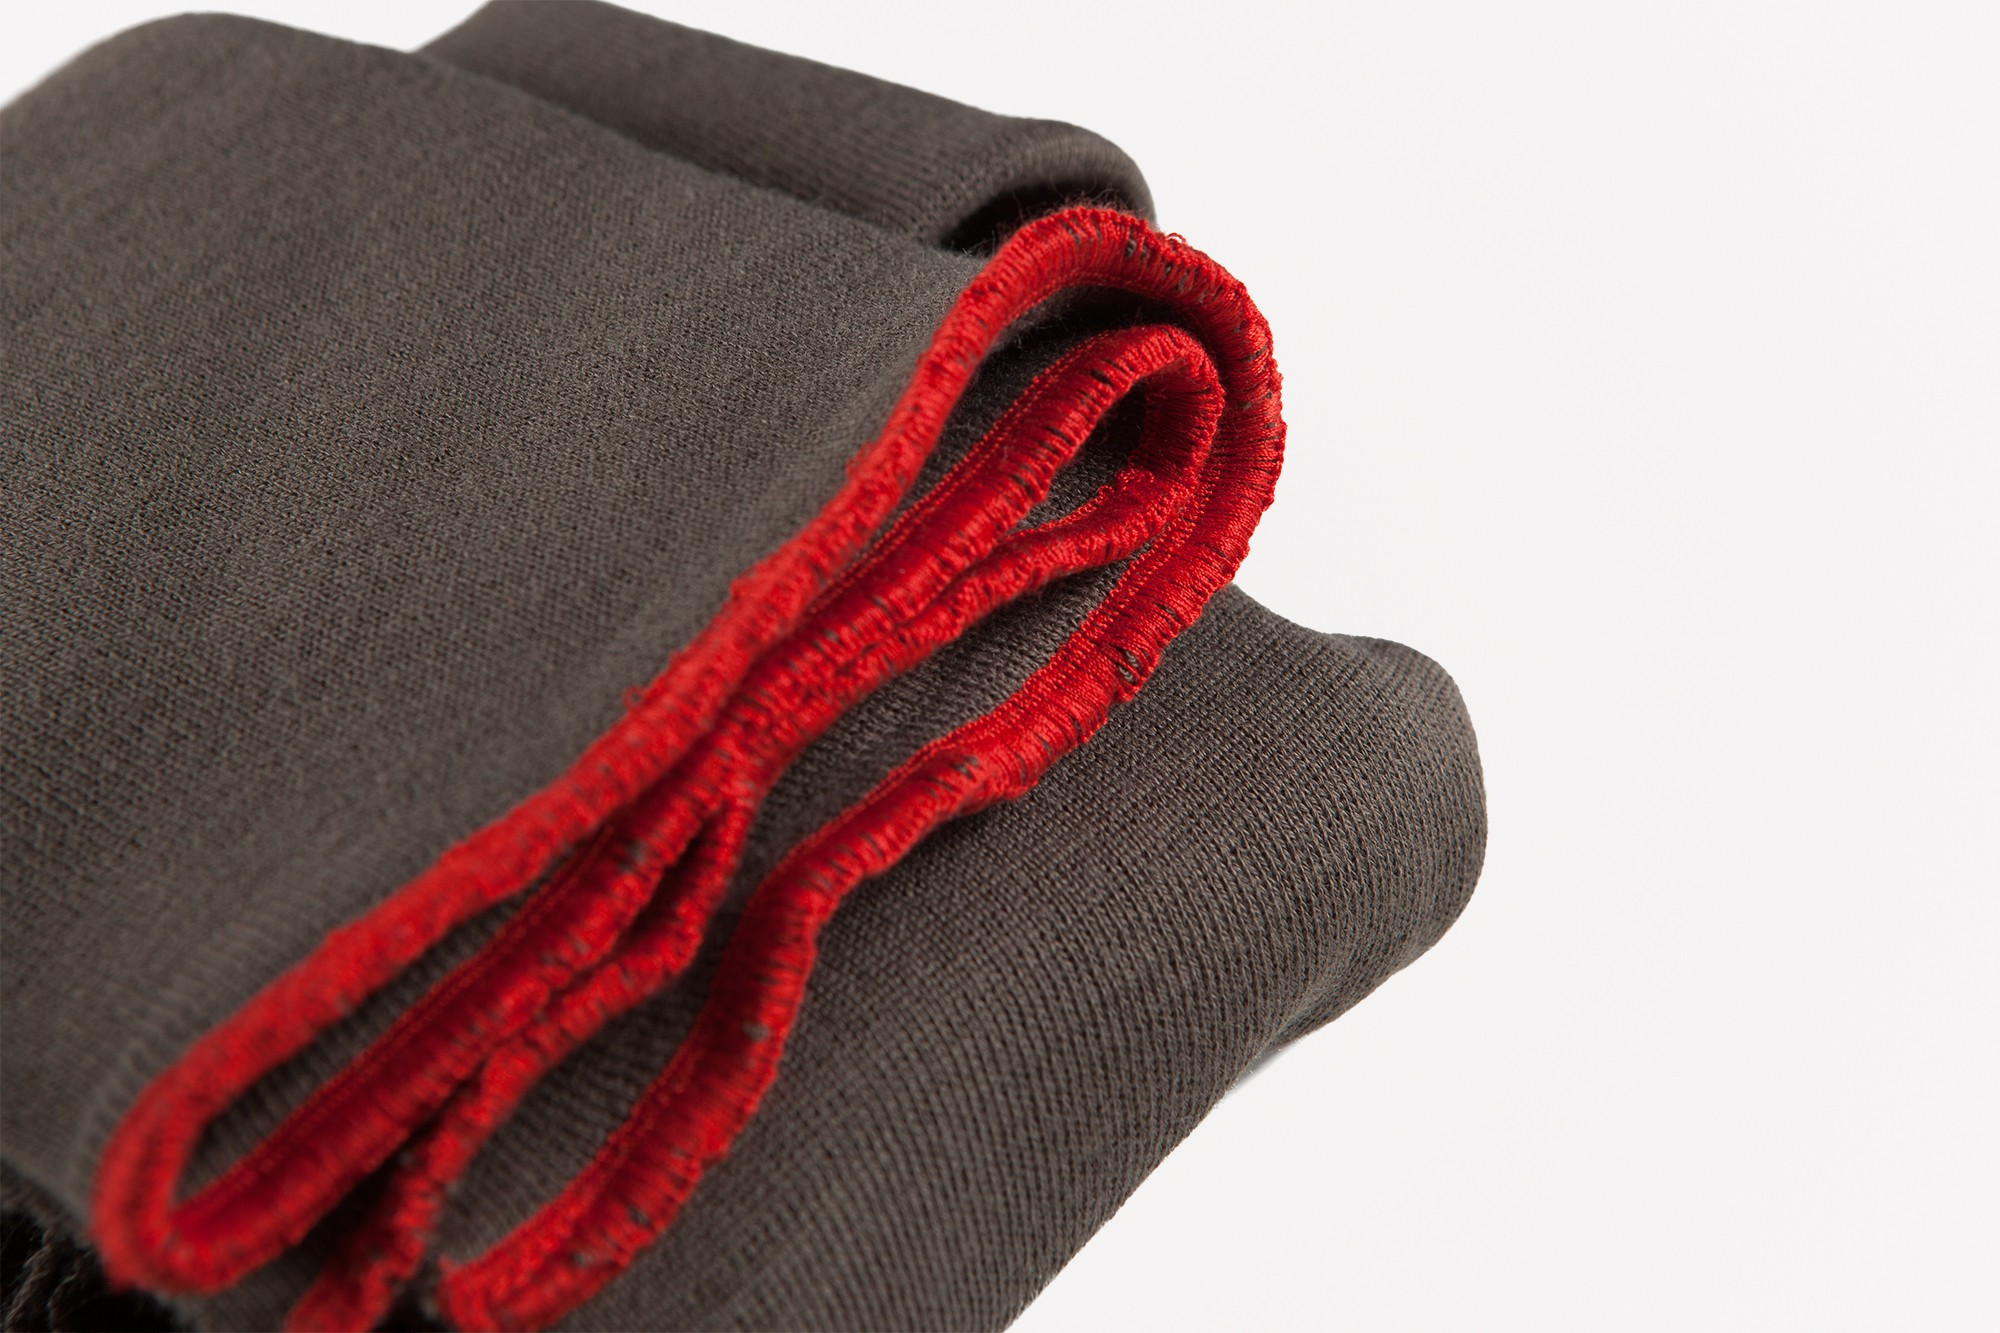 Tour de cou snood vert militaire et rouge cardinal made in France